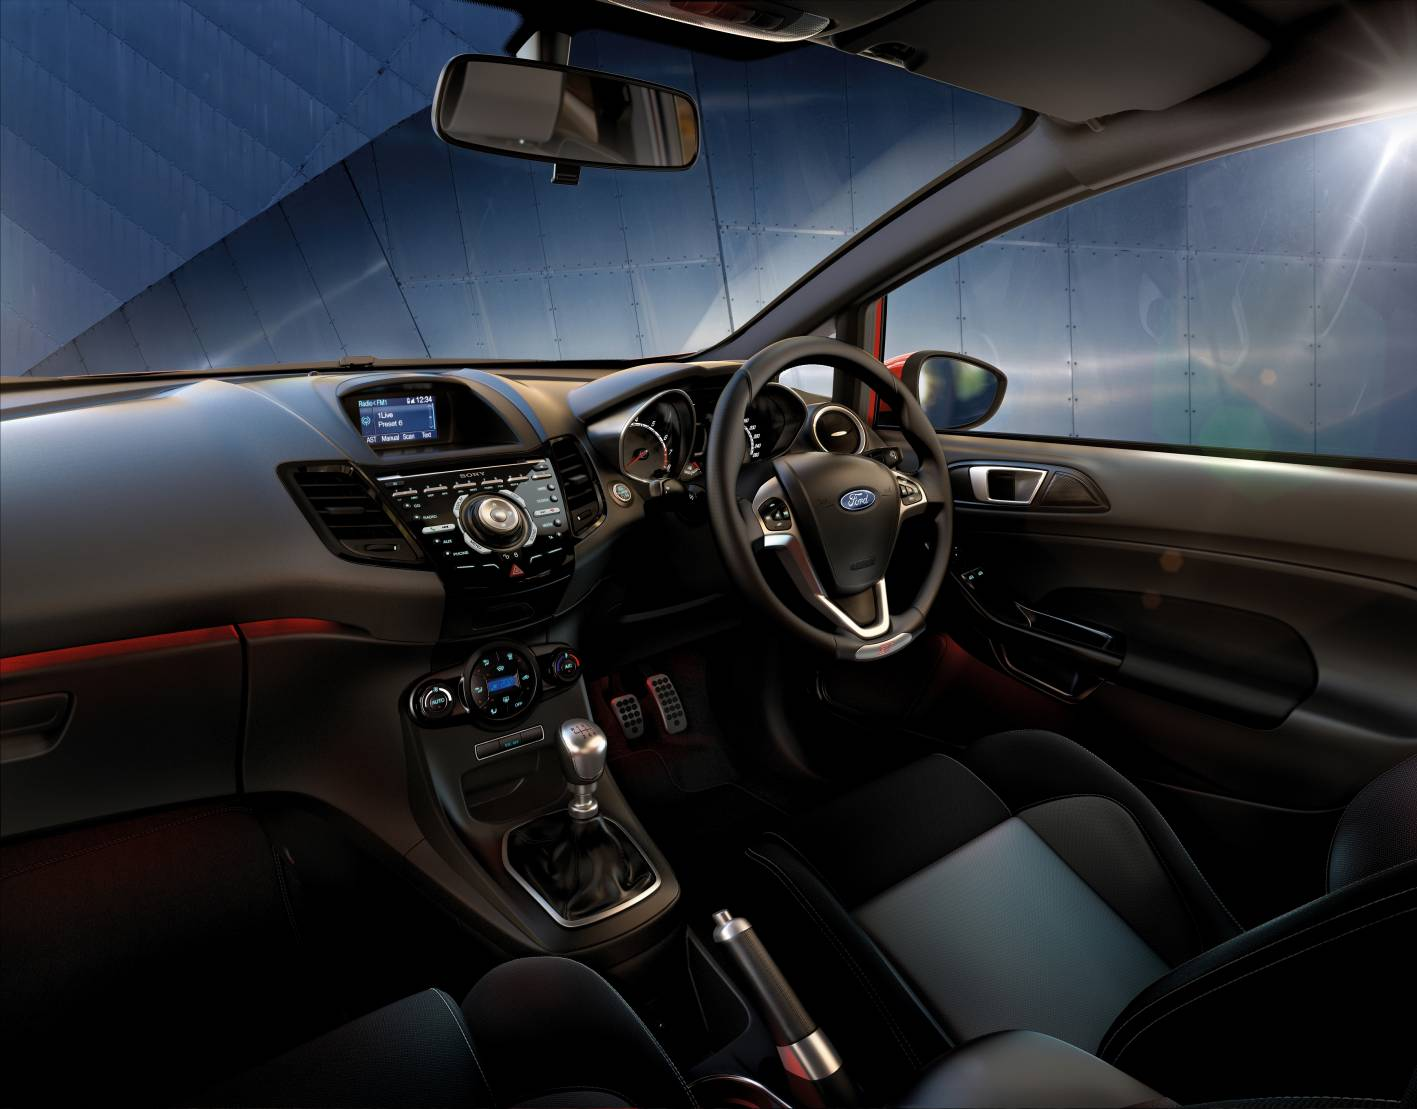 how to turn on ford fiesta rear parking sensors